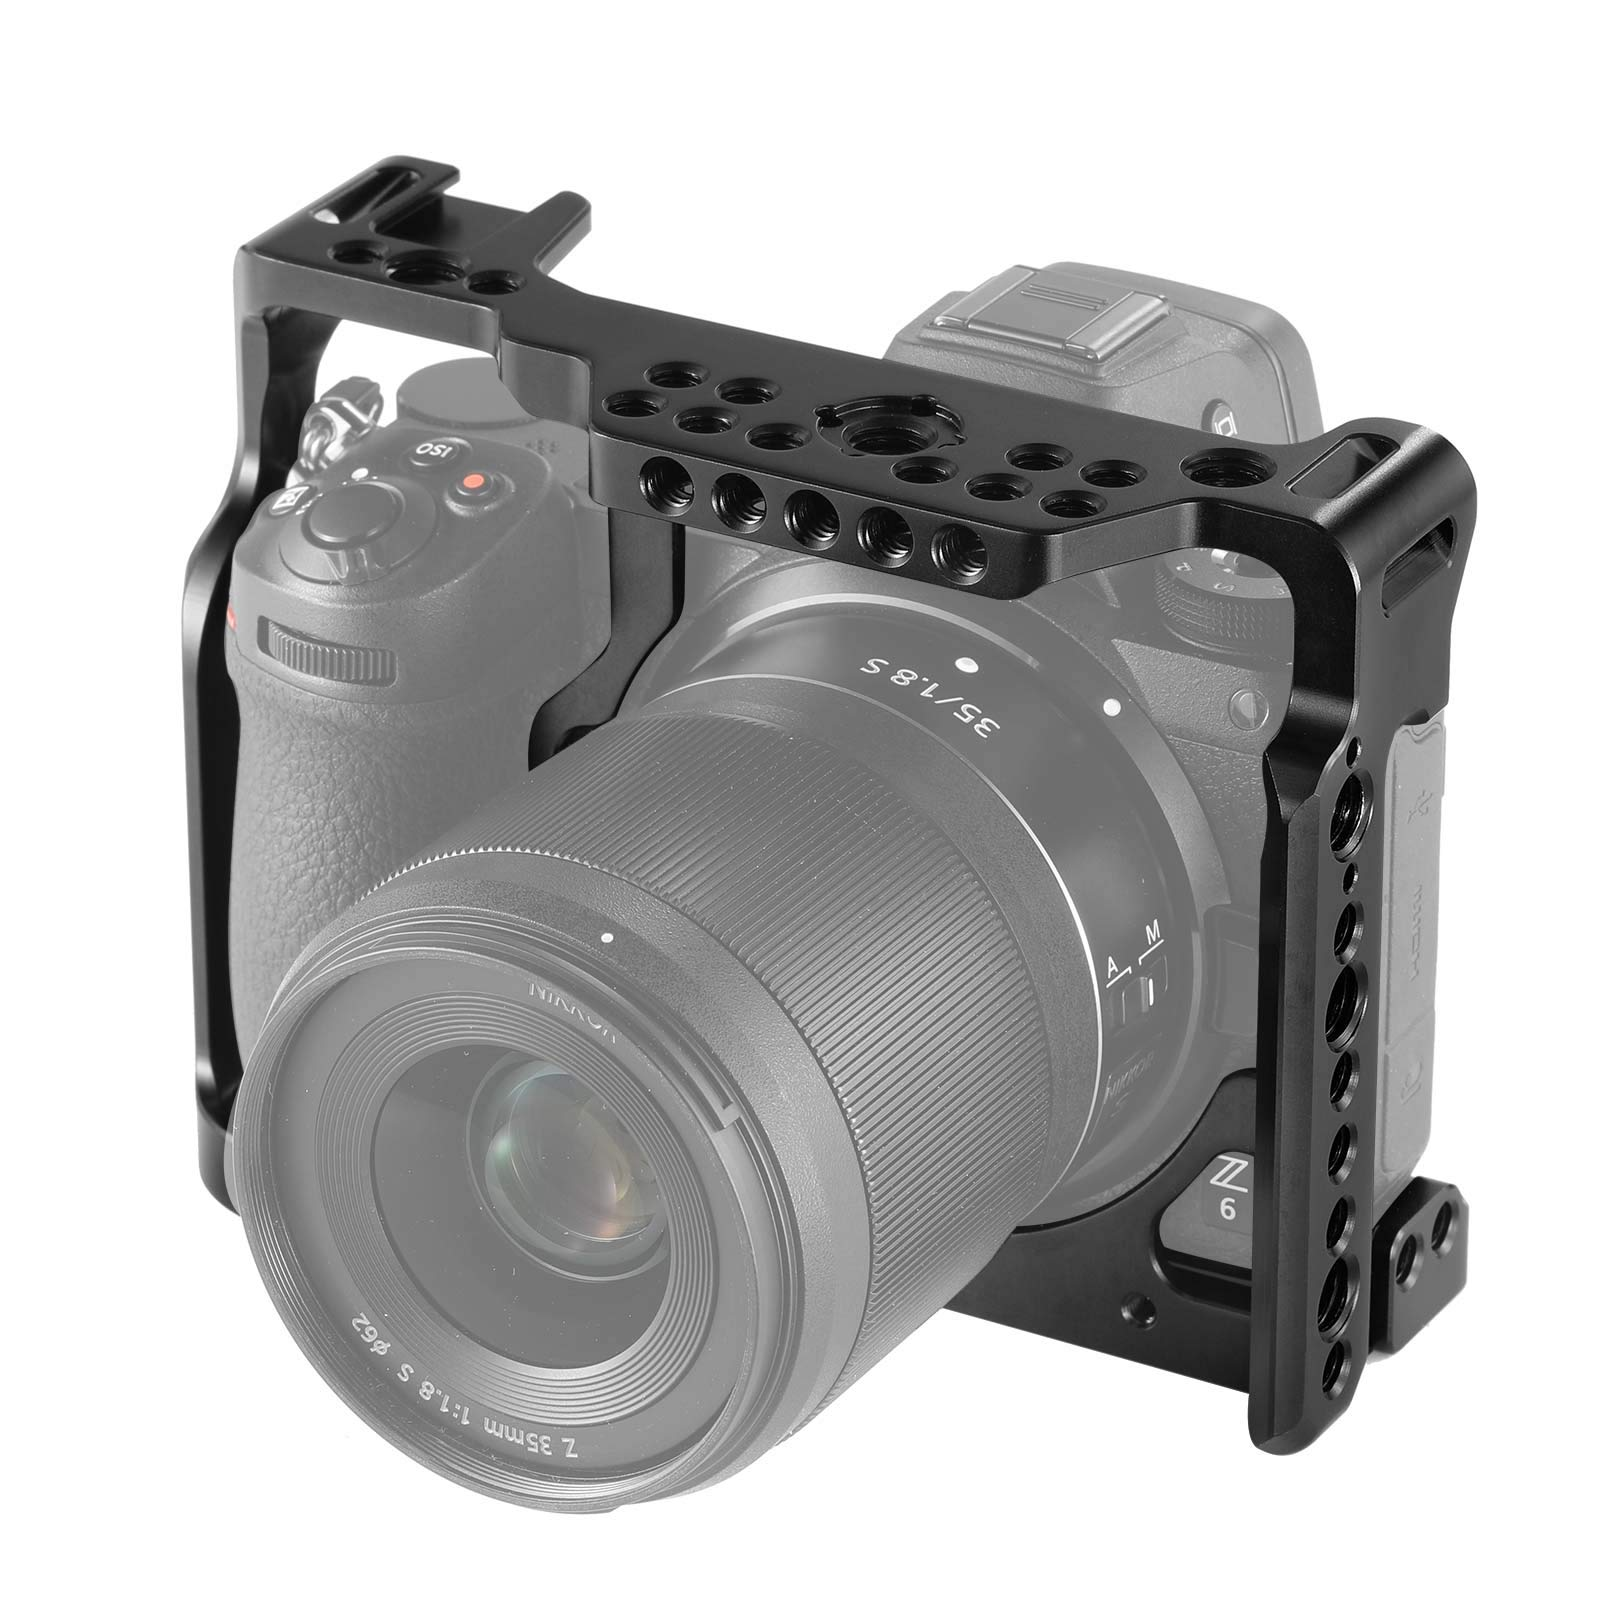 SMALLRIG Camera Cage for Nikon Z6/ Z7 Camera with Built-in NATO Rail and Cold Shoe 2243 by SMALLRIG (Image #5)